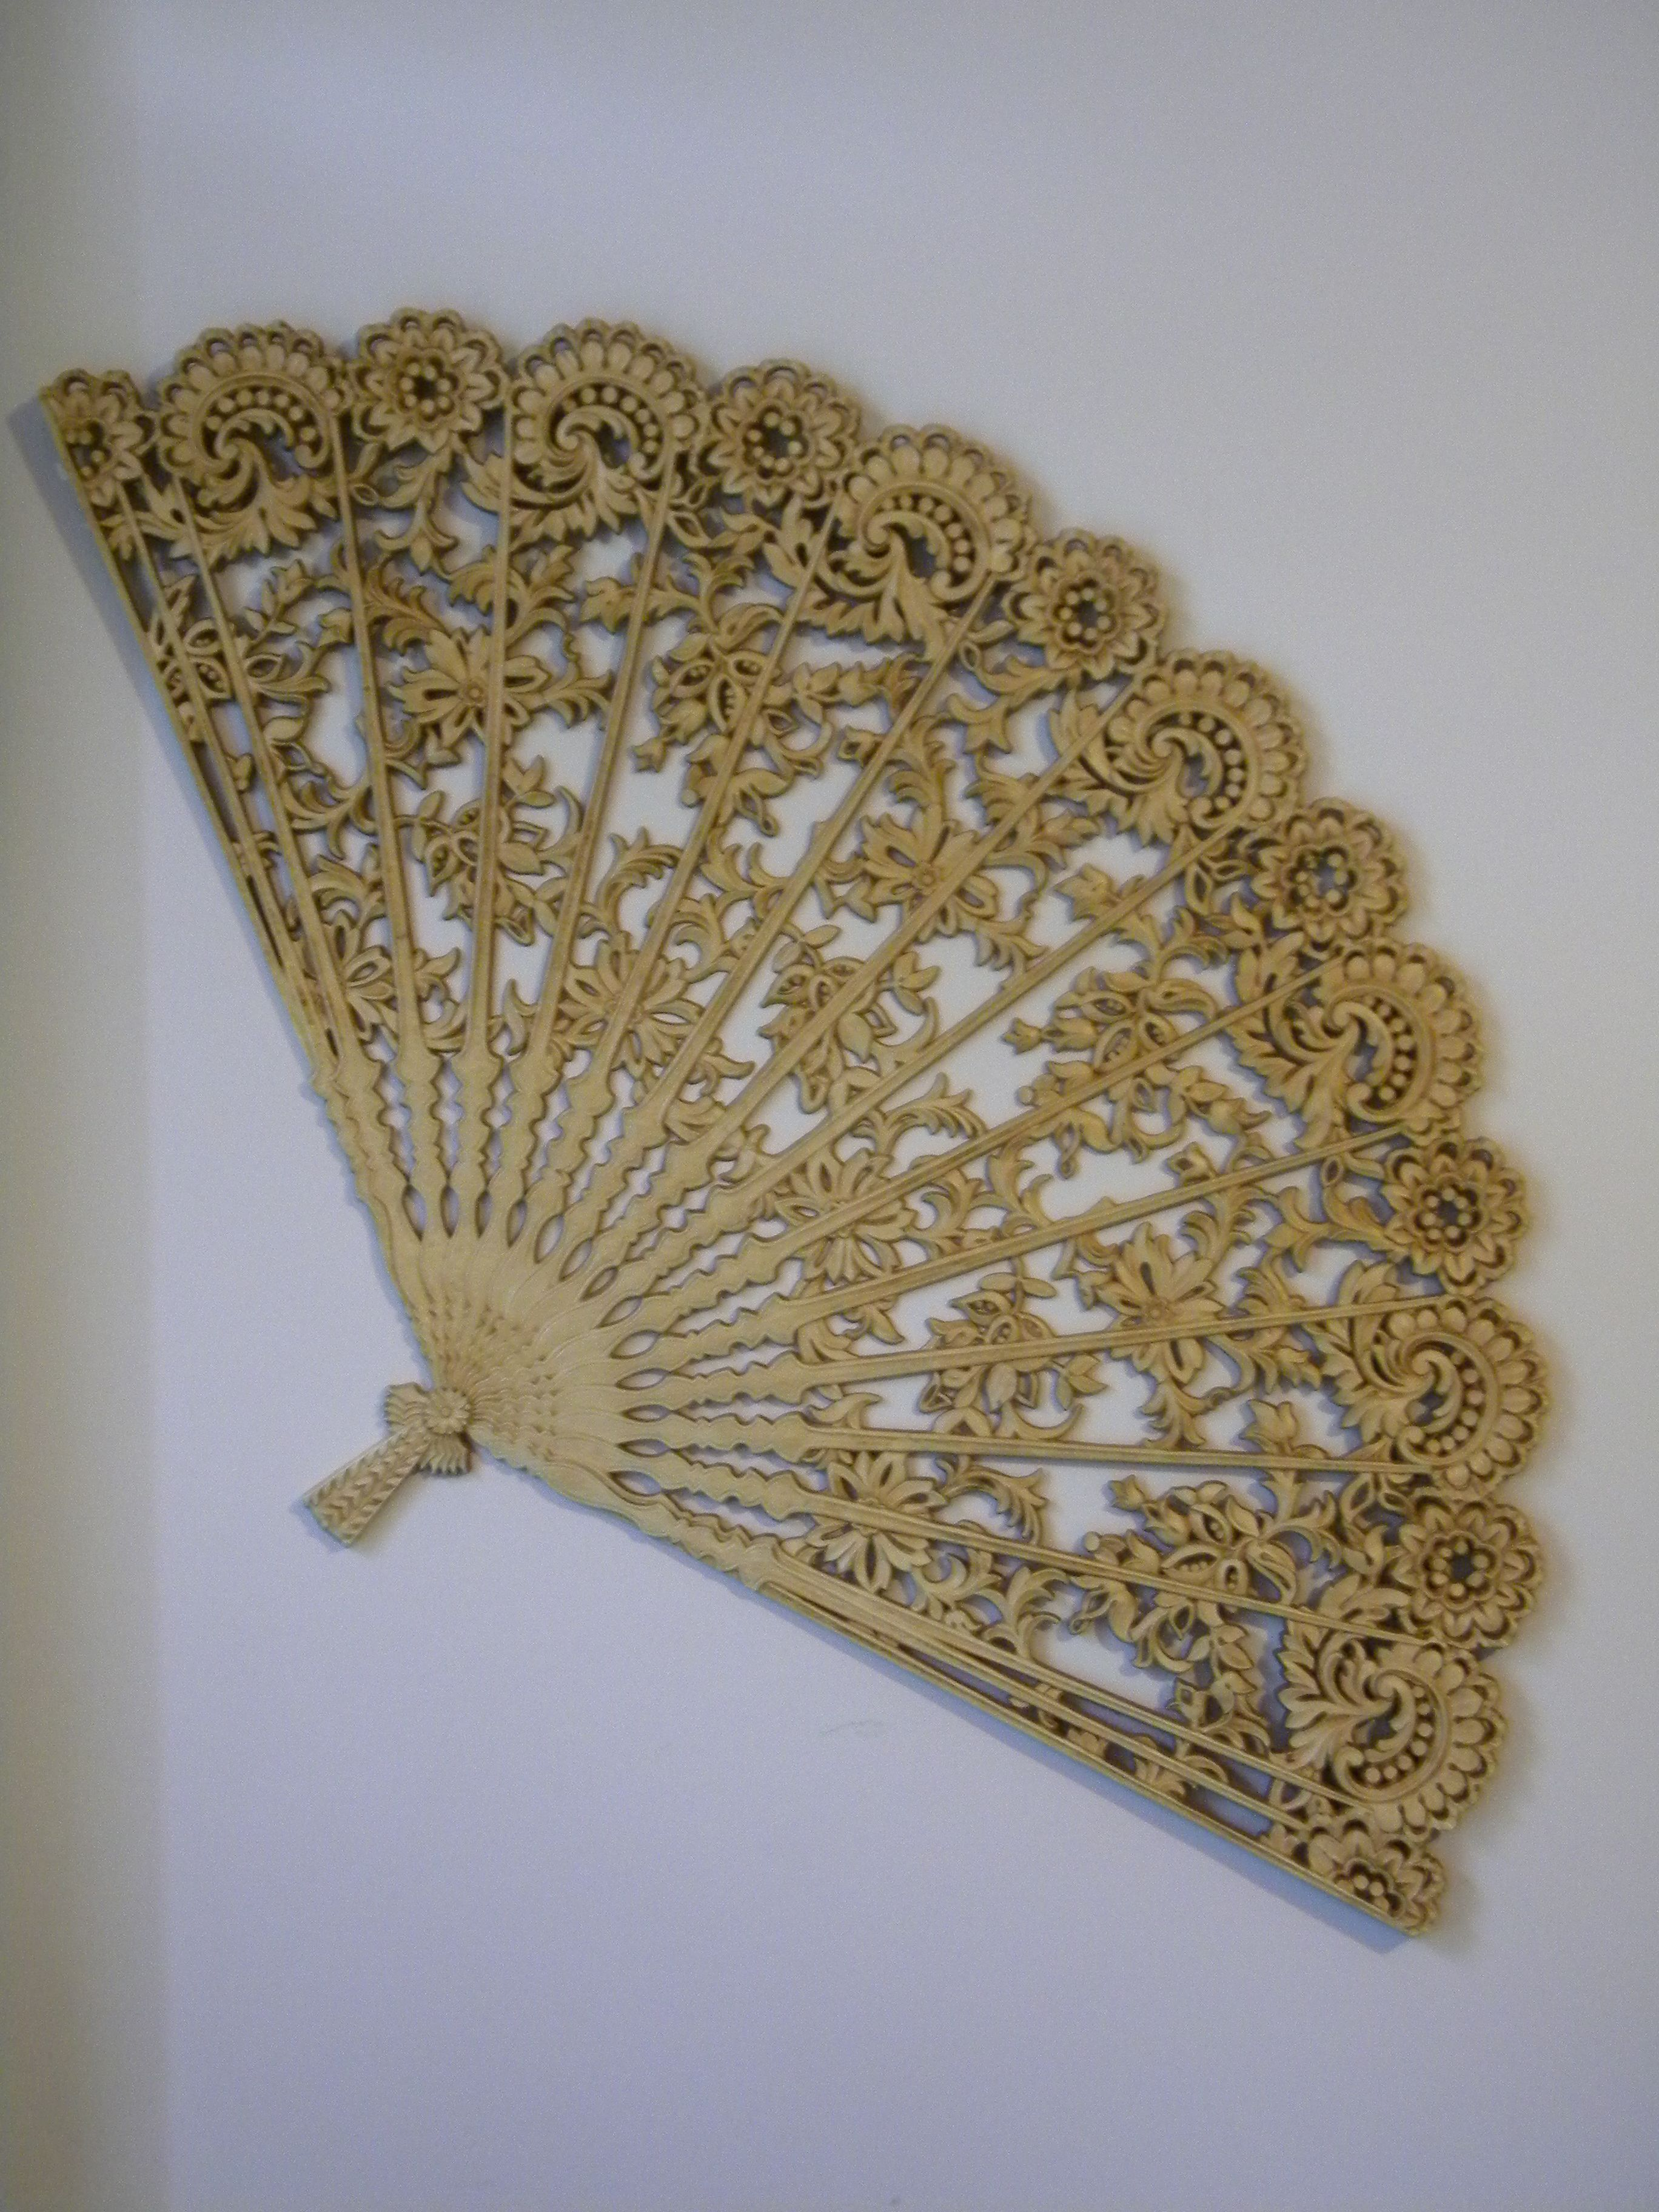 Huge Chinese Fan Wall Decor Love This Wall Fans Antique Fans